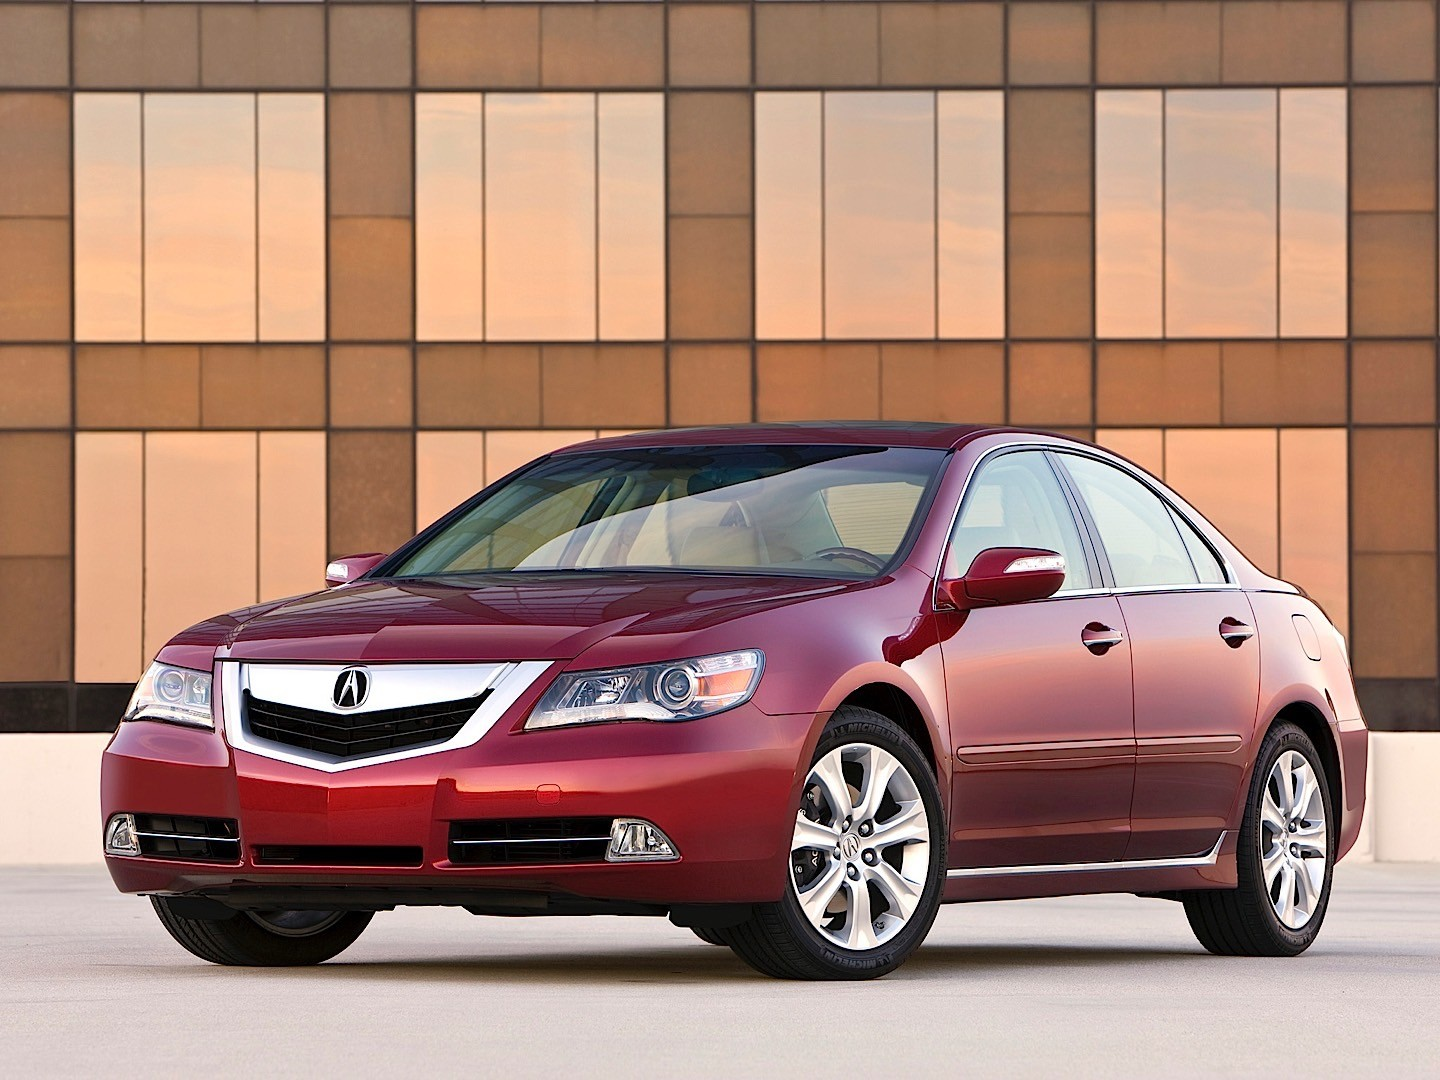 Expensive Sports Cars 2012 ACURA RL - 2008, 2009,...